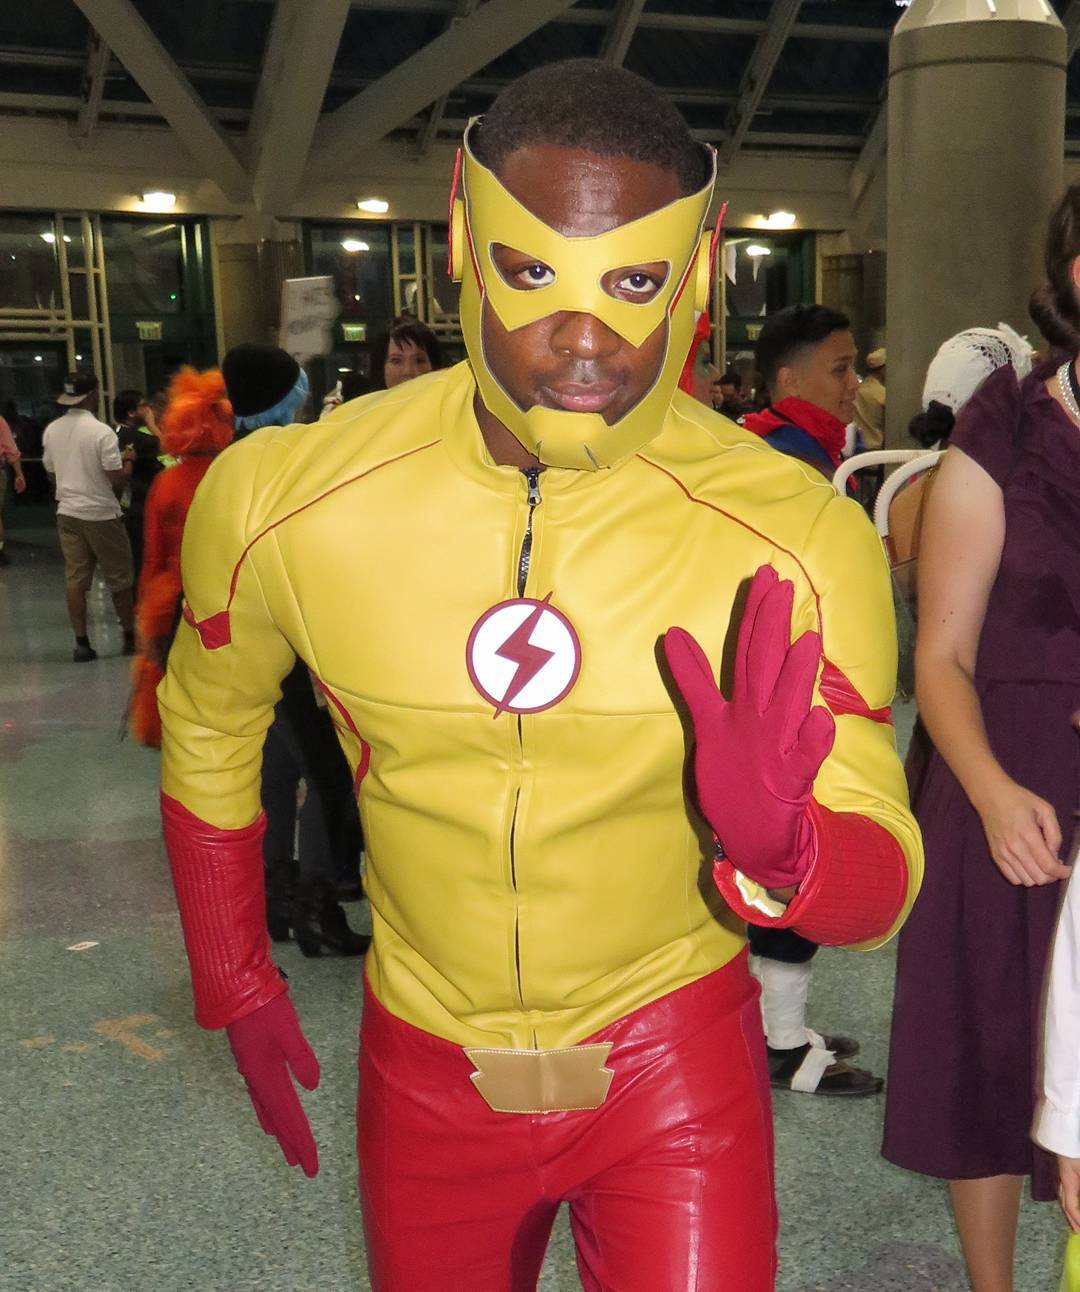 TV-style Wally West Flash cosplay at. More photos at flickr.com/kelsonv